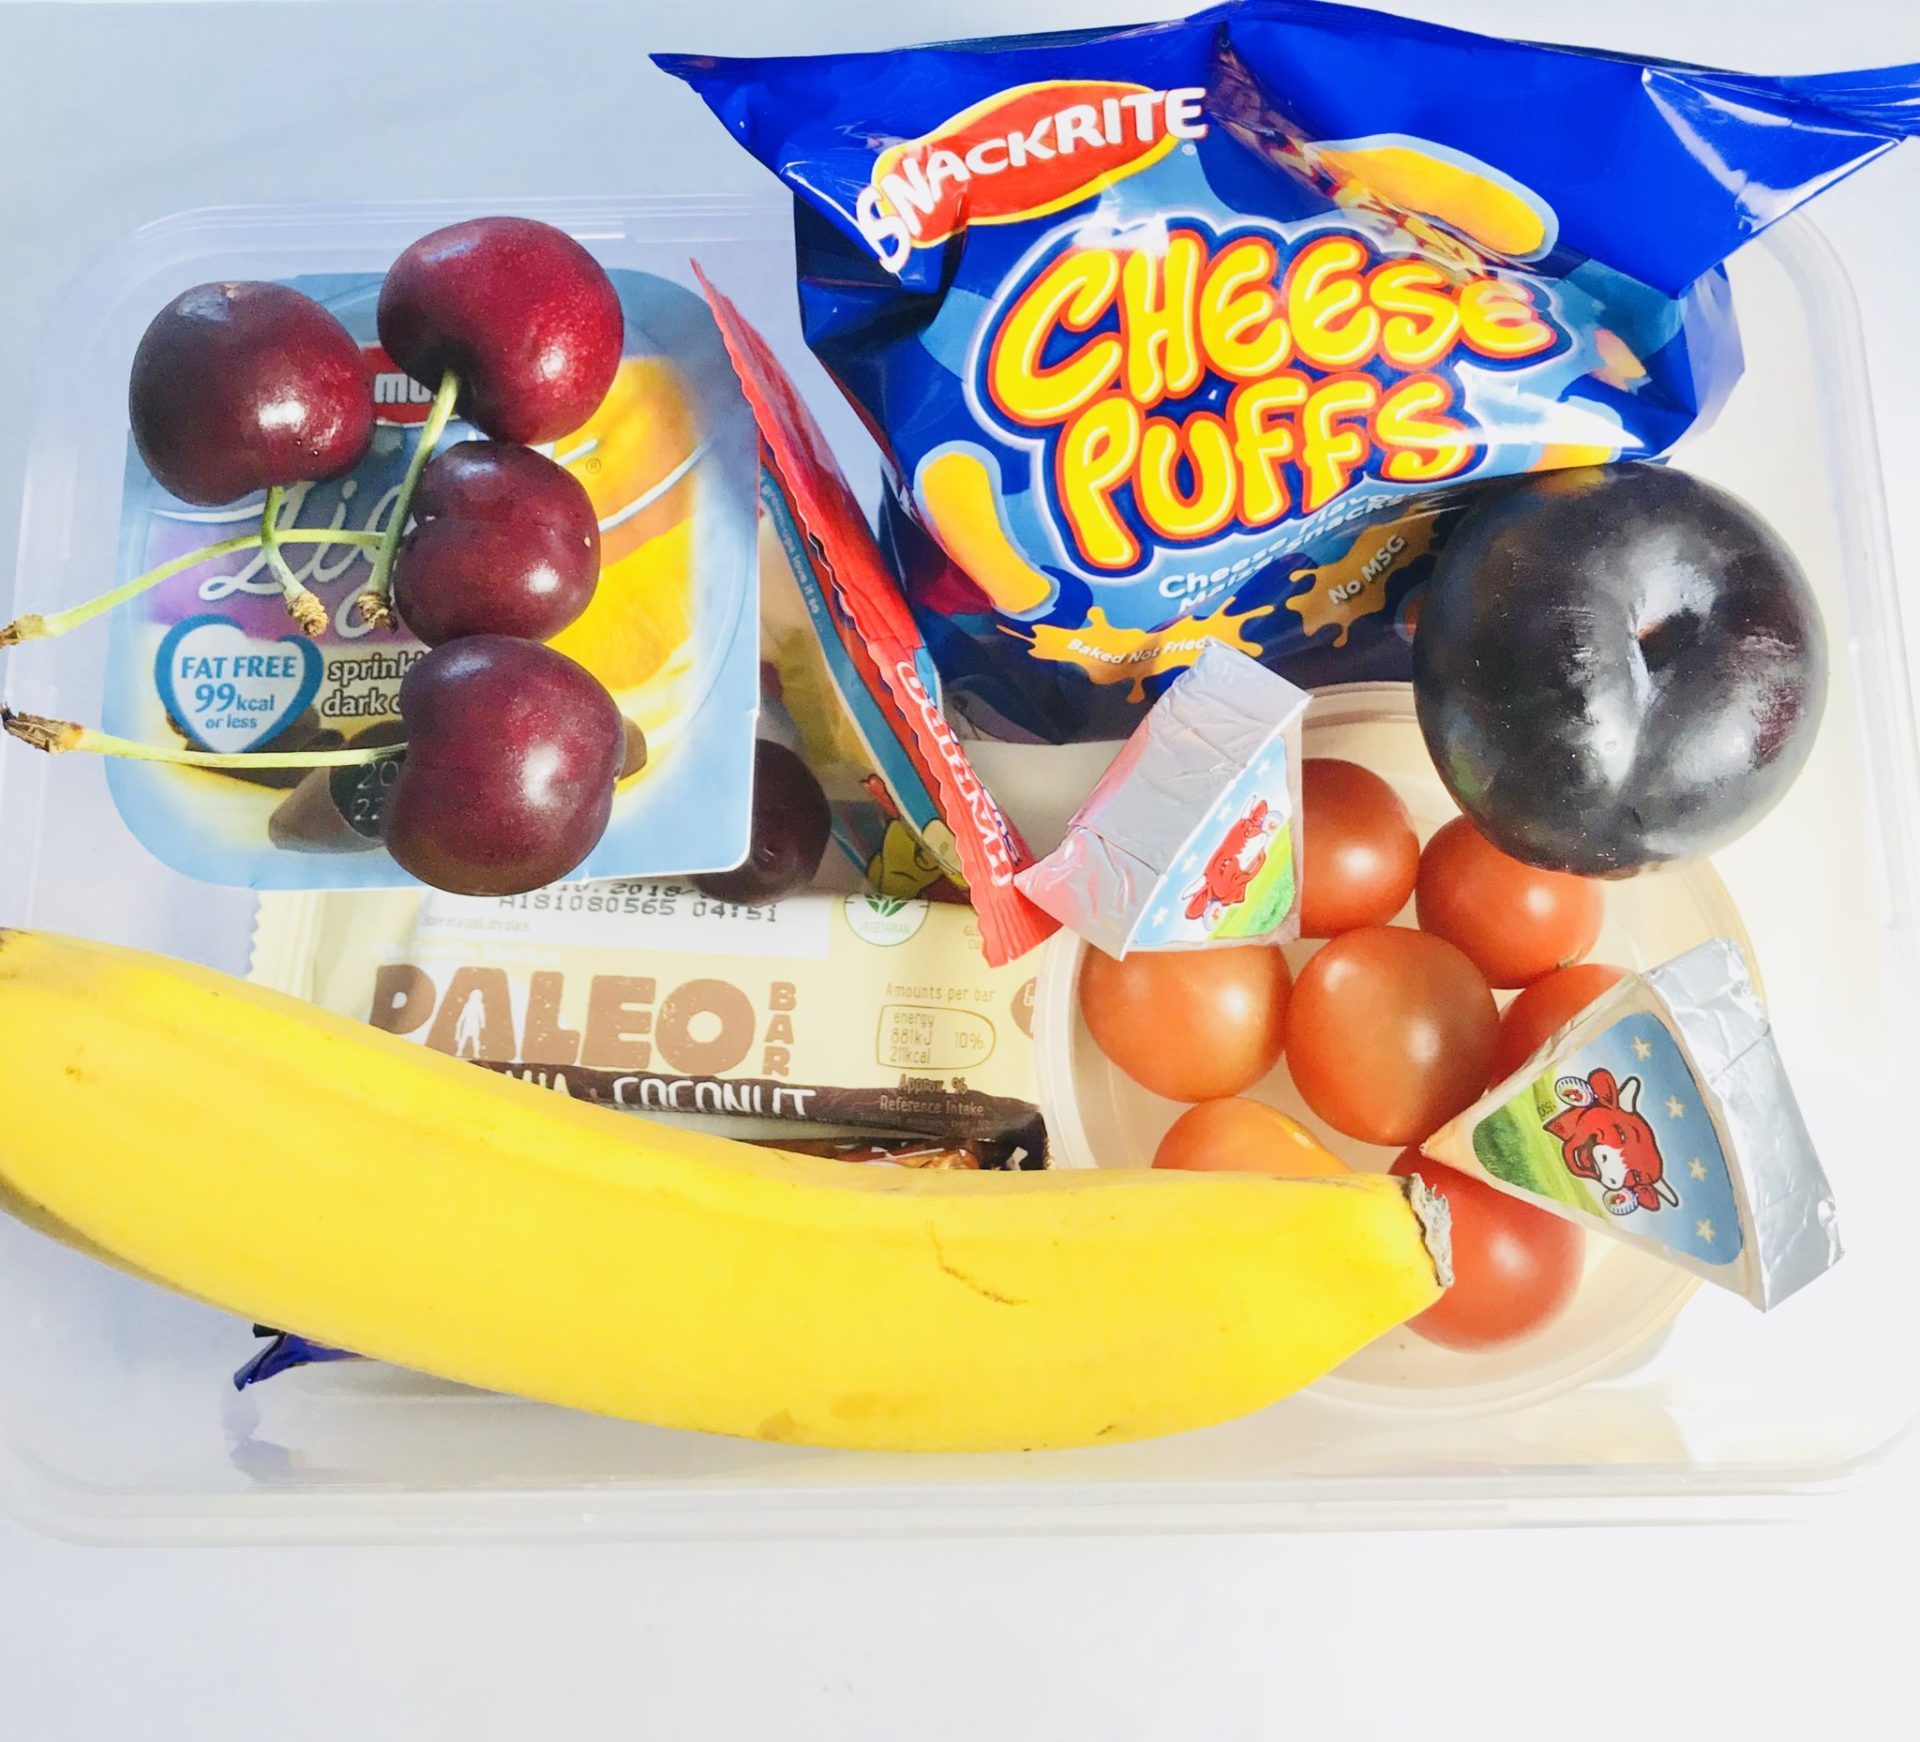 snack box idea crisps ,cherries, banana, cheese, fruit bar, cherry tomatoes yoghurt and a plum for kids snackbox